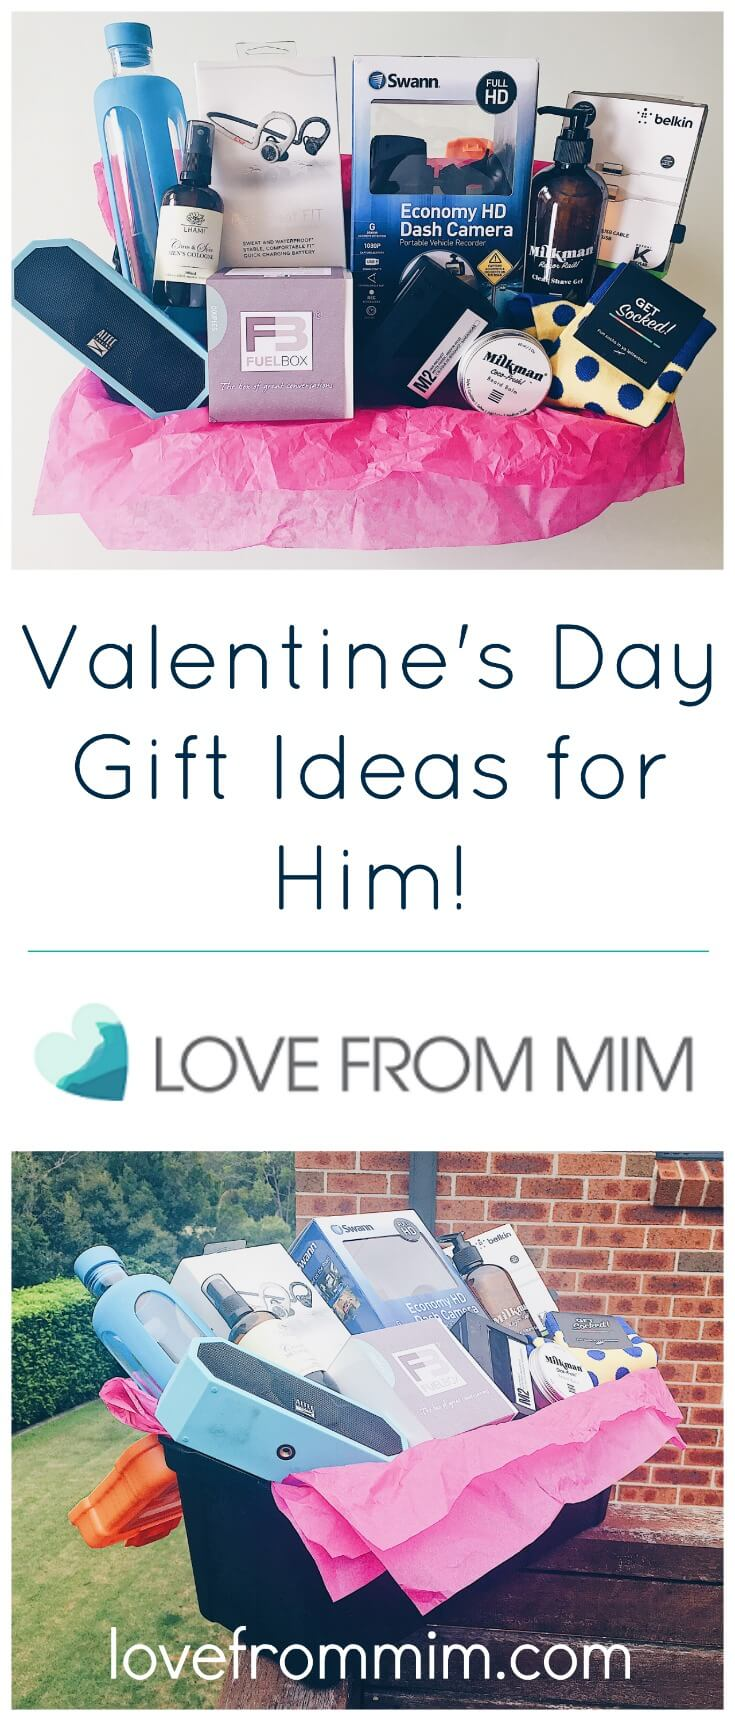 10 Valentine's Day Gift Ideas for Him! - Love from Mim